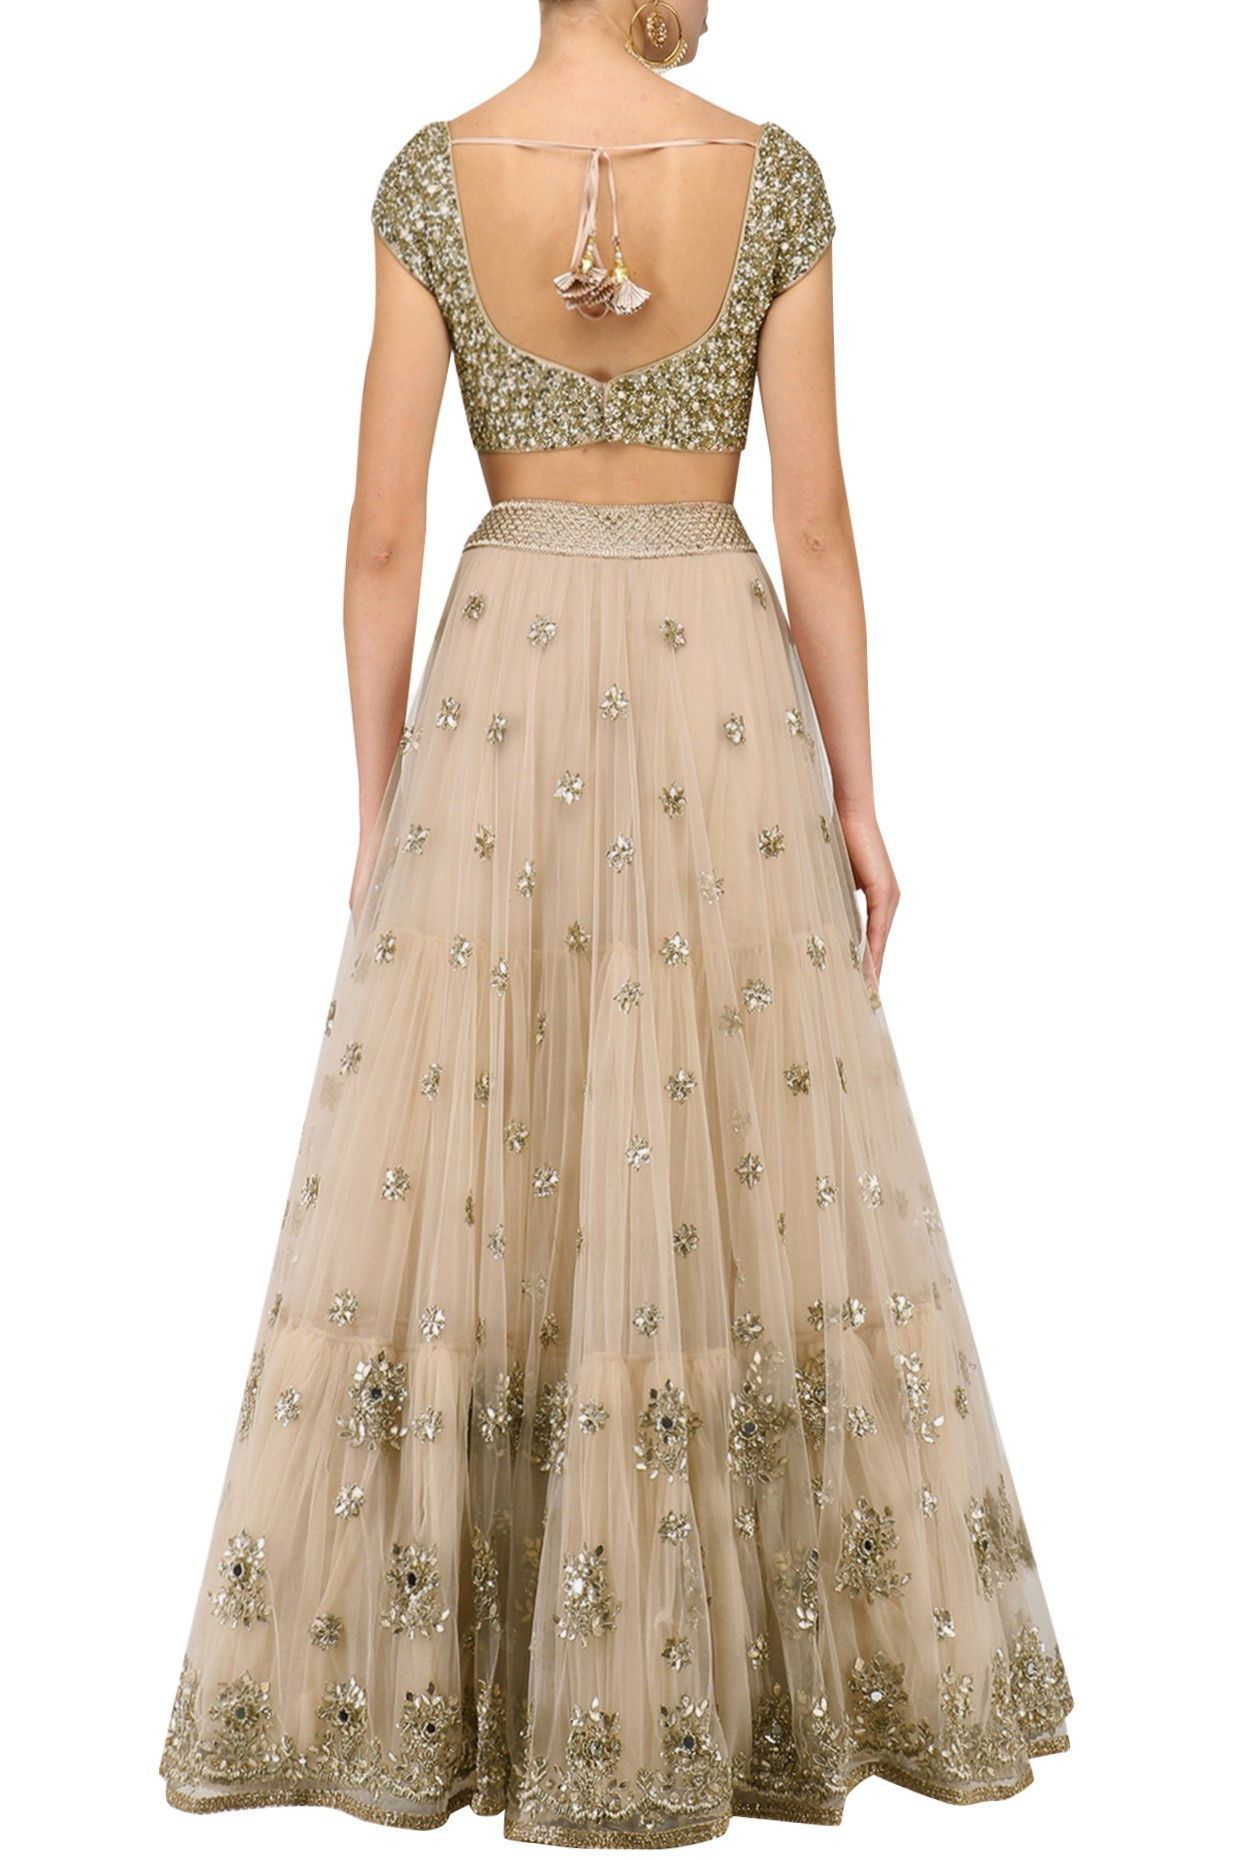 fecafdb17 Beautiful champagne gold sequins lehenga with gorgeous latkans. Click on  image for price. #Frugal2Fab